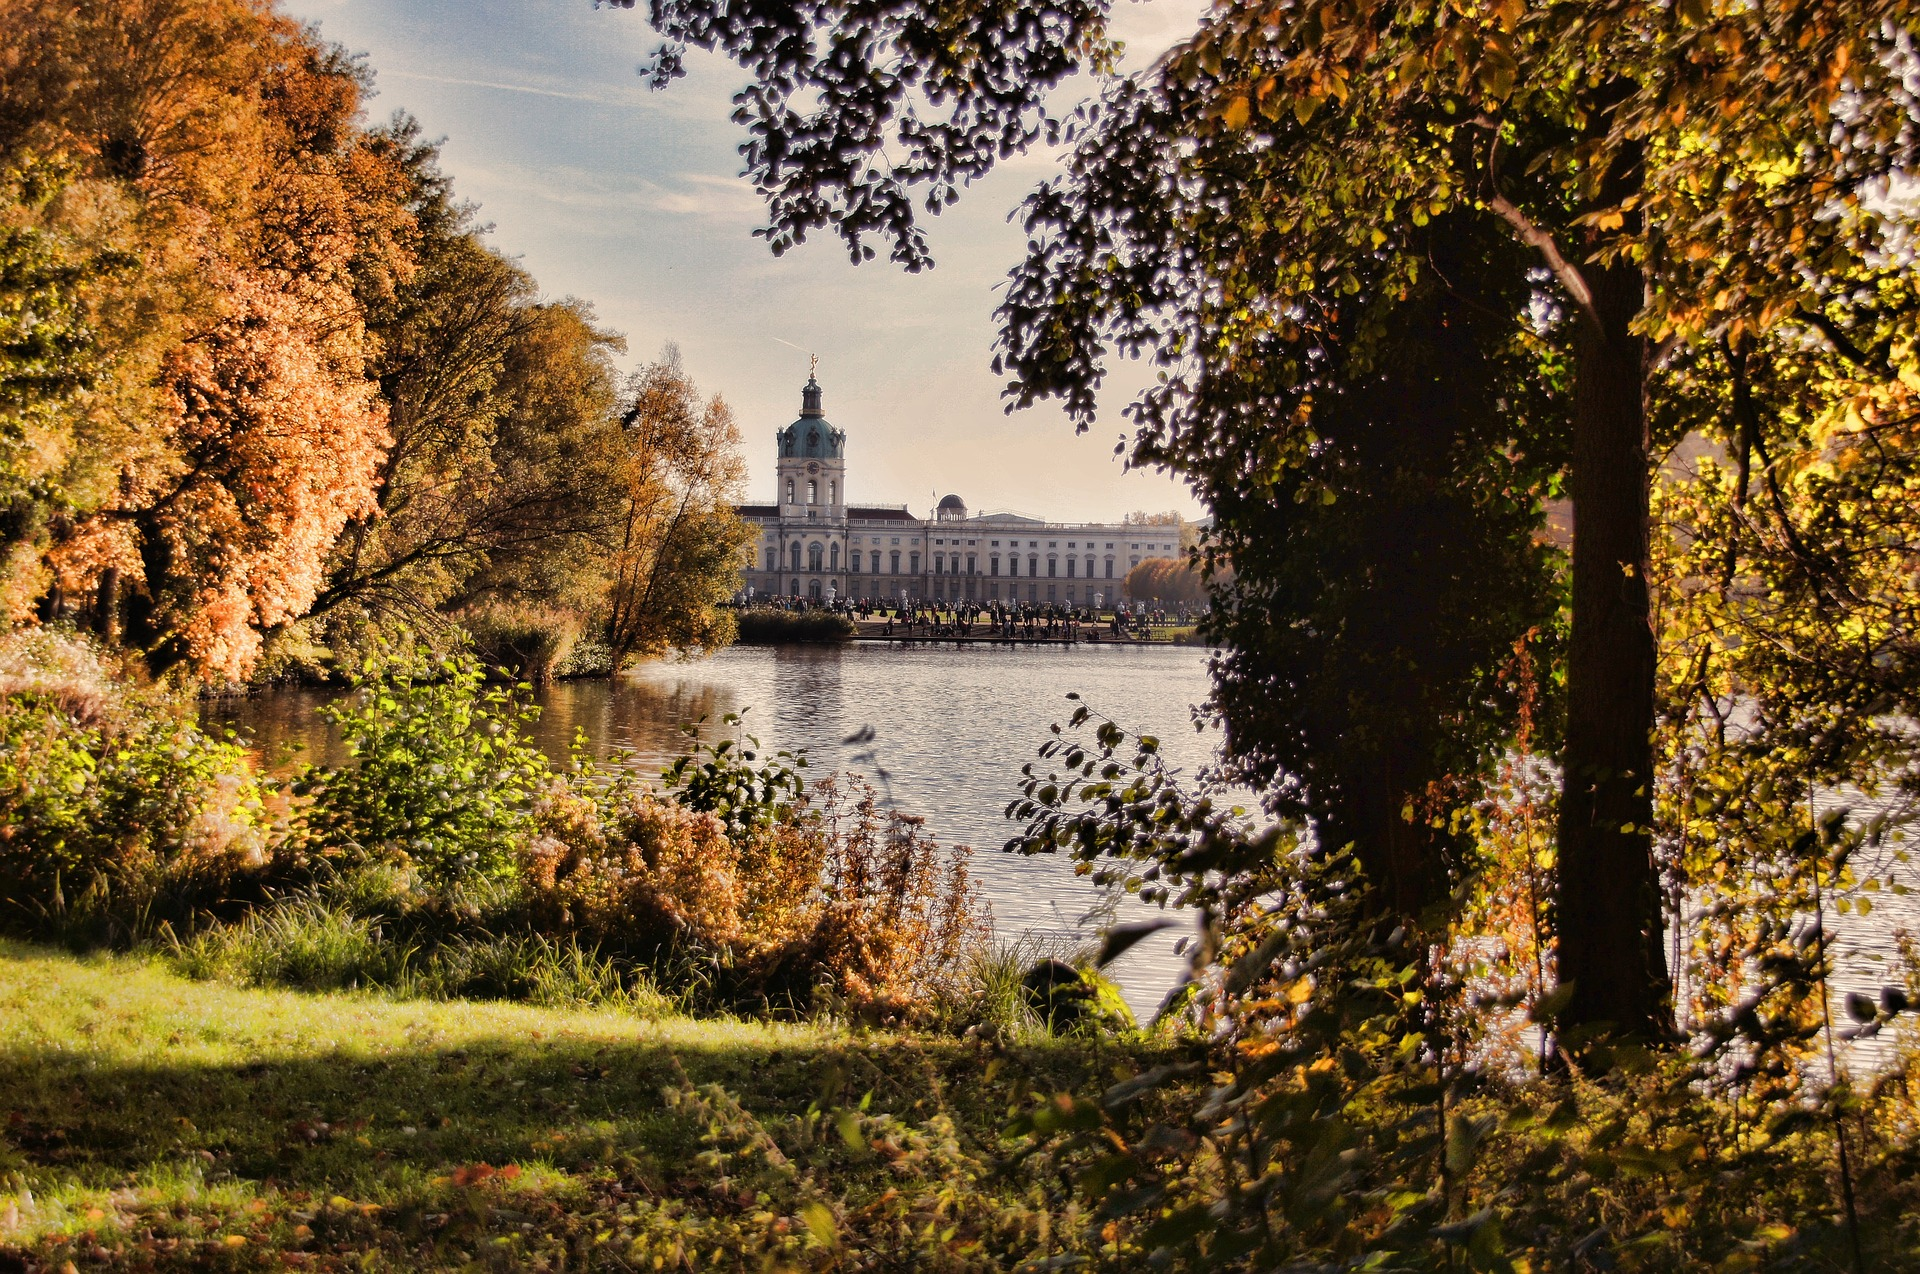 Charlottenburg Palace and Park, Berlin, Germany